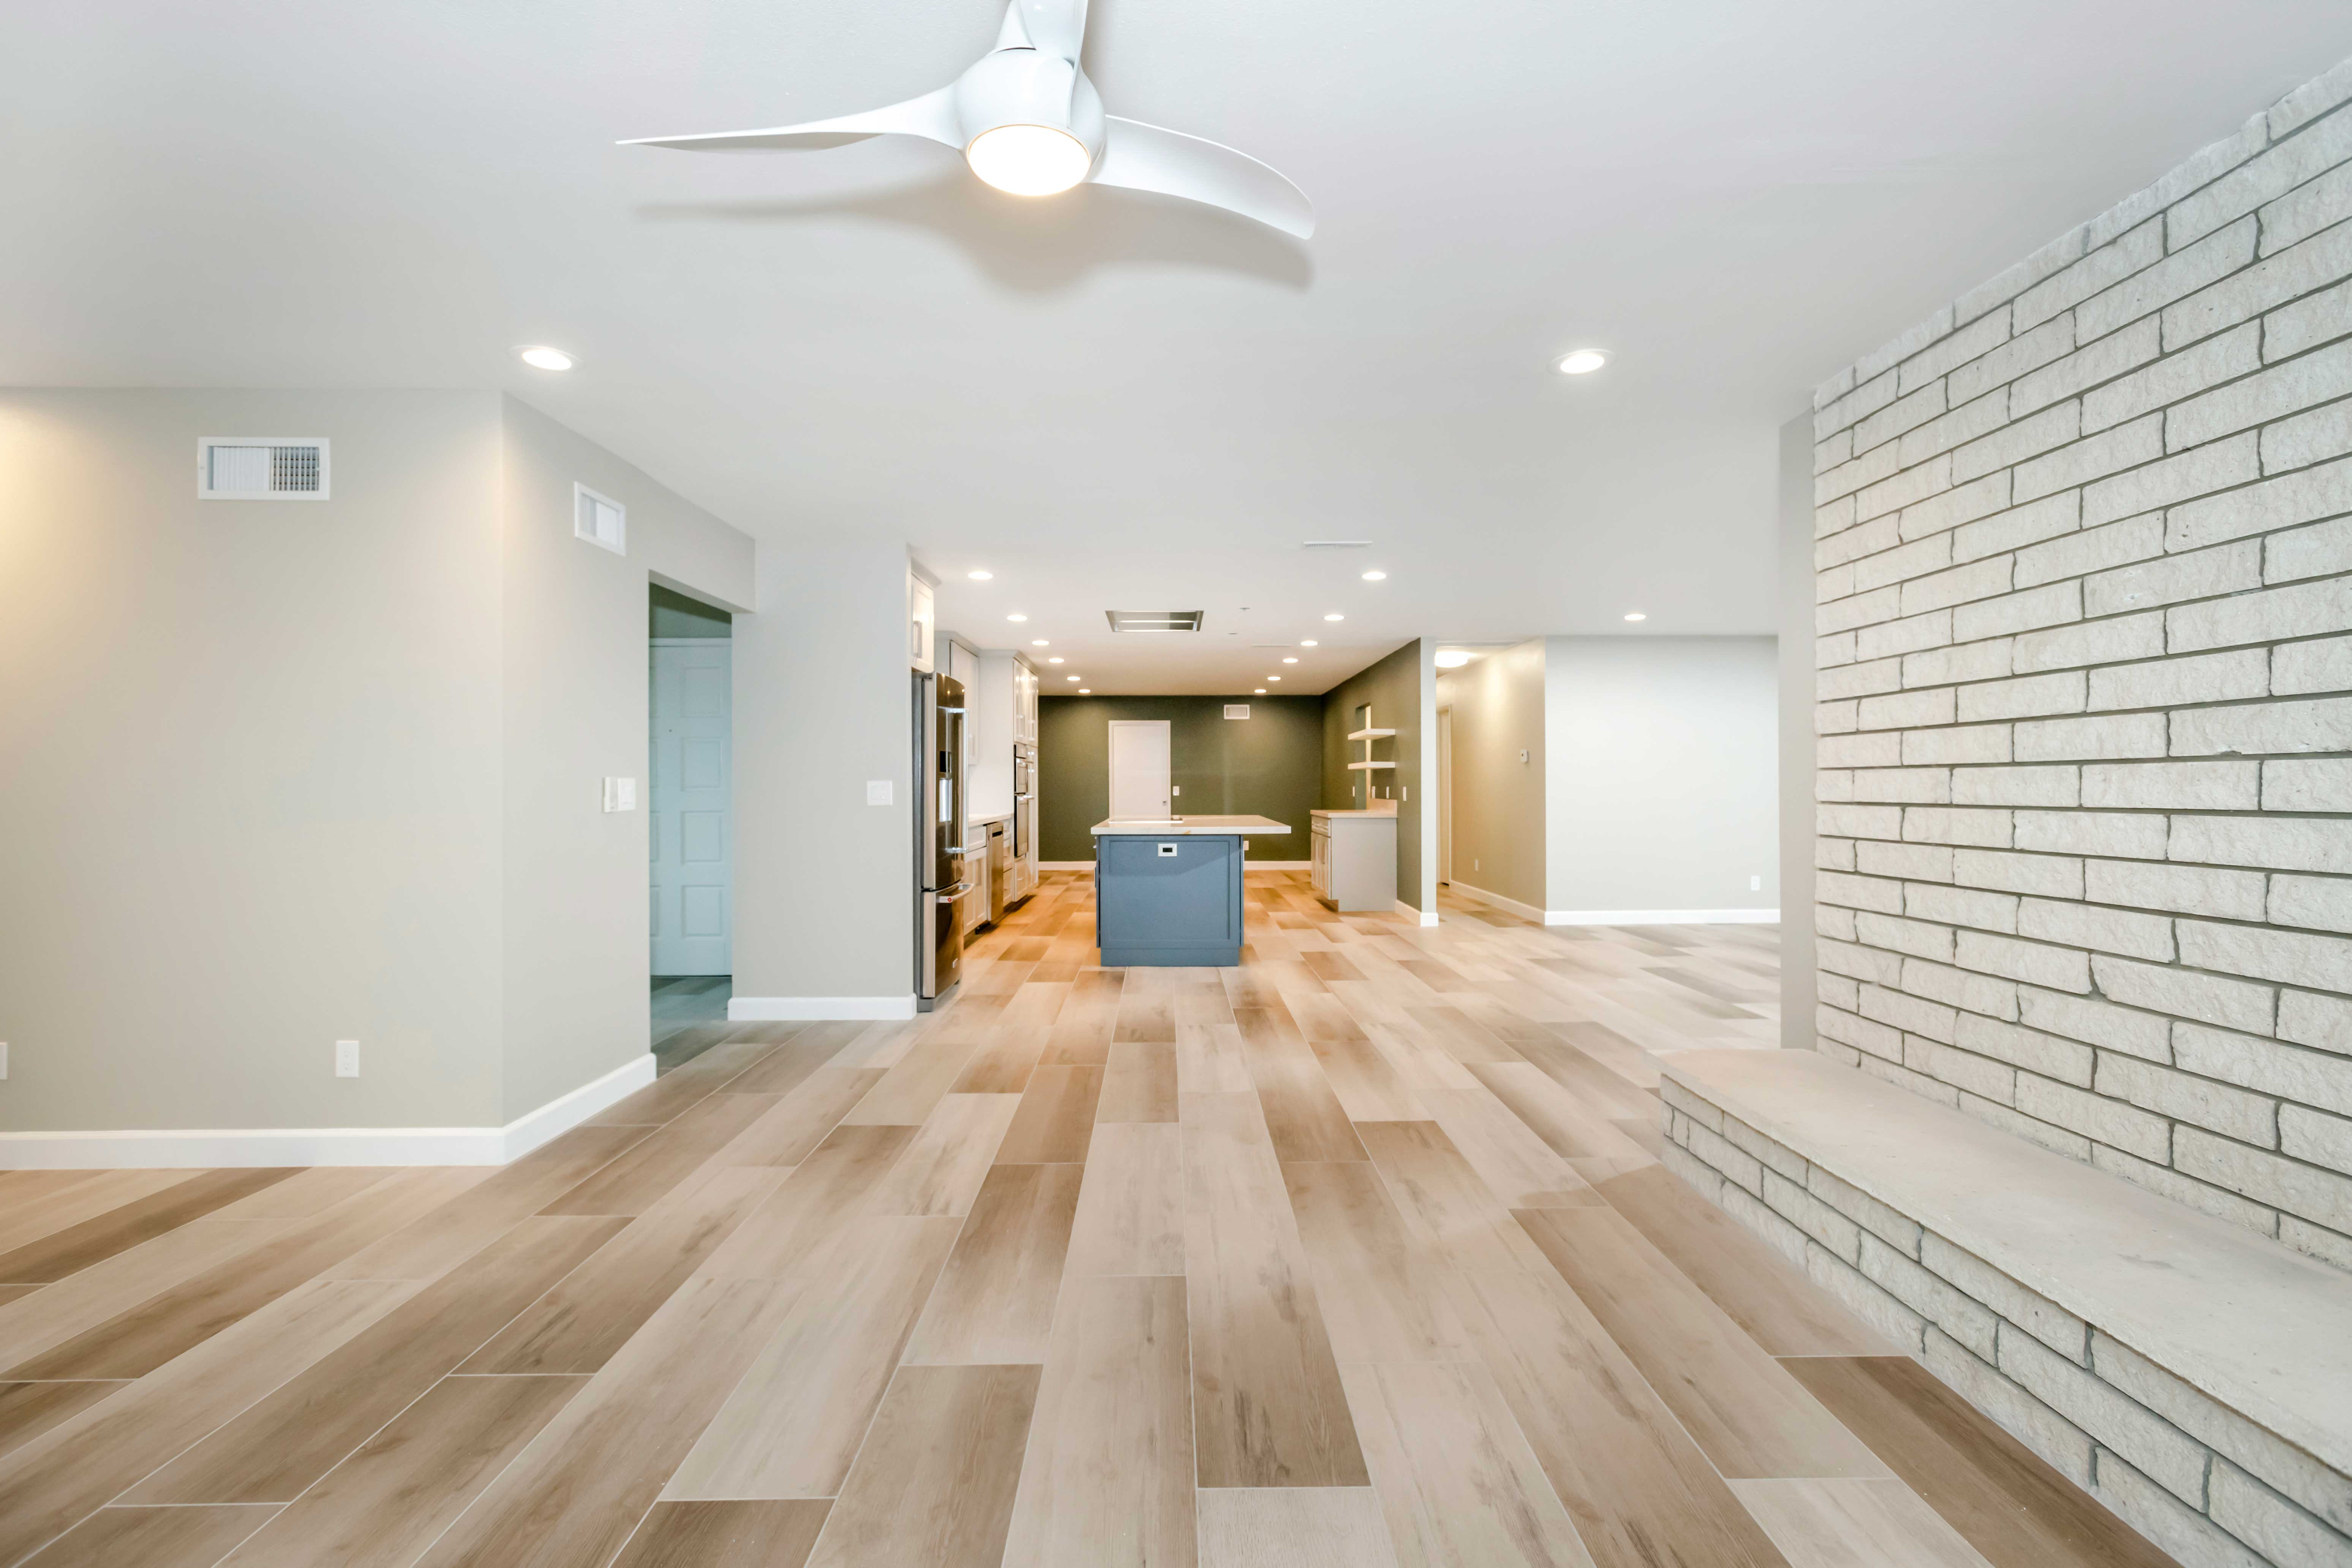 San Diego Home Remodelers Introduces the Future of Interior Design